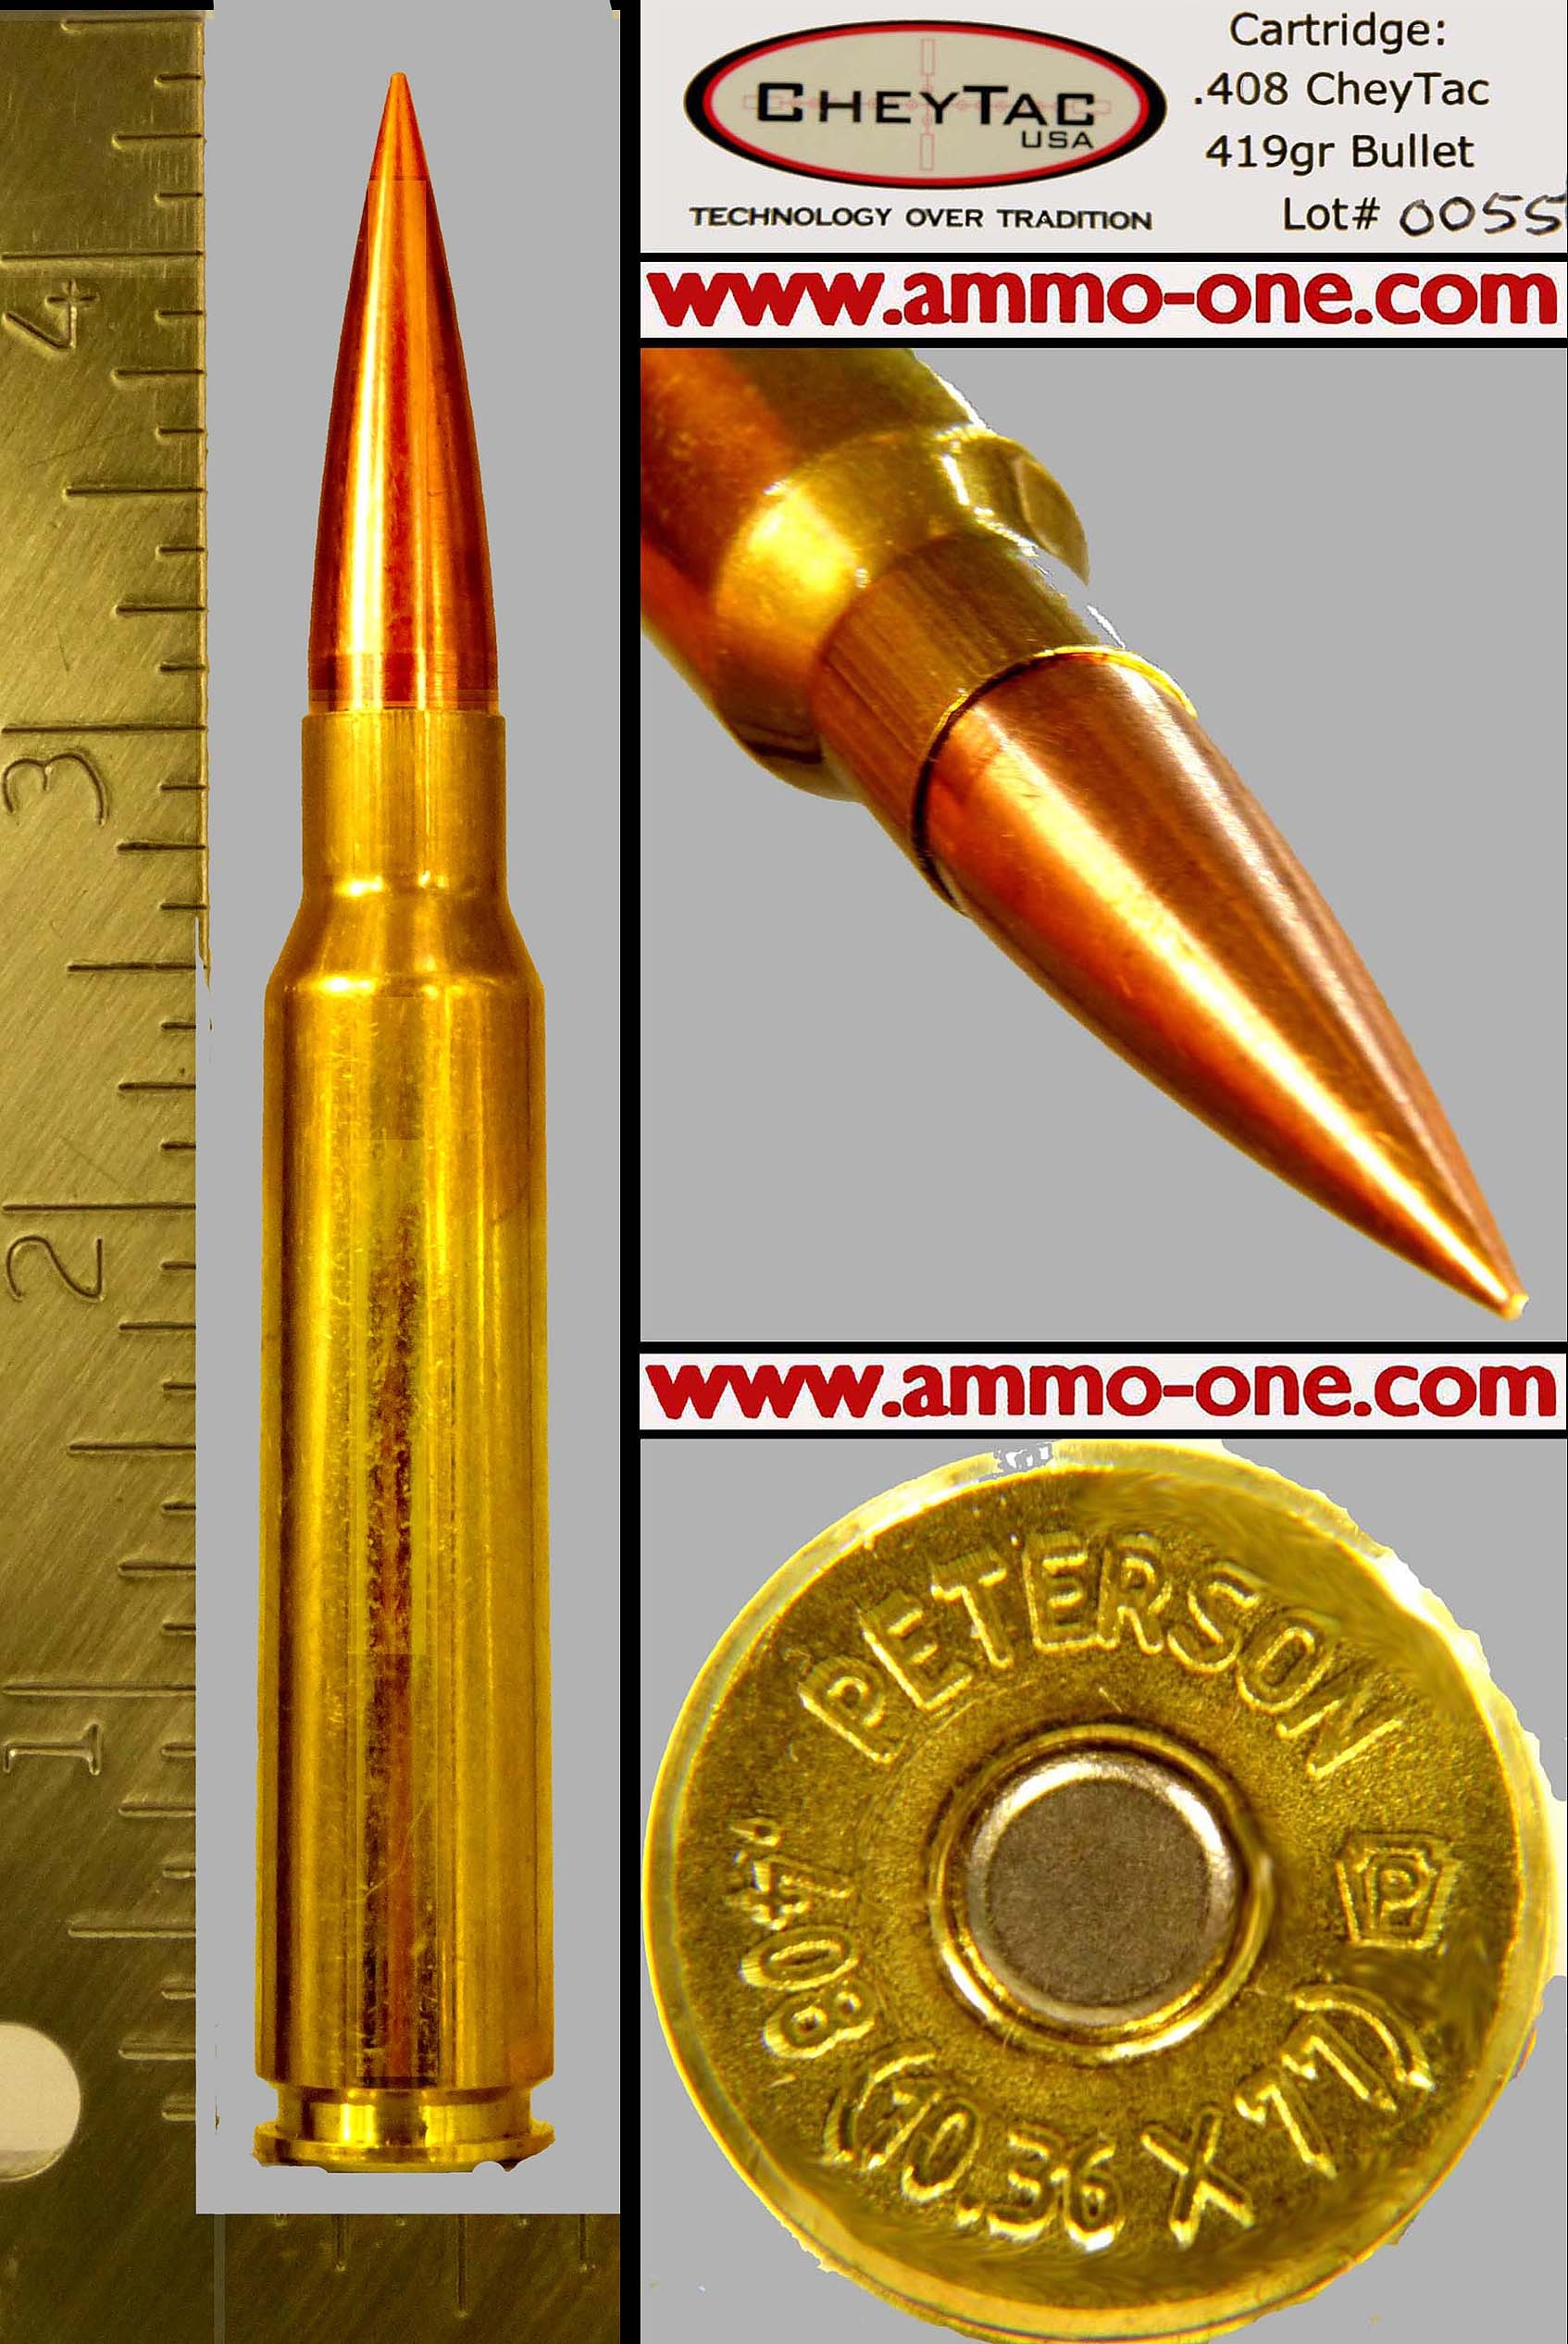 408 CheyTac Chey Tac ammo ammunition for sale Peterson